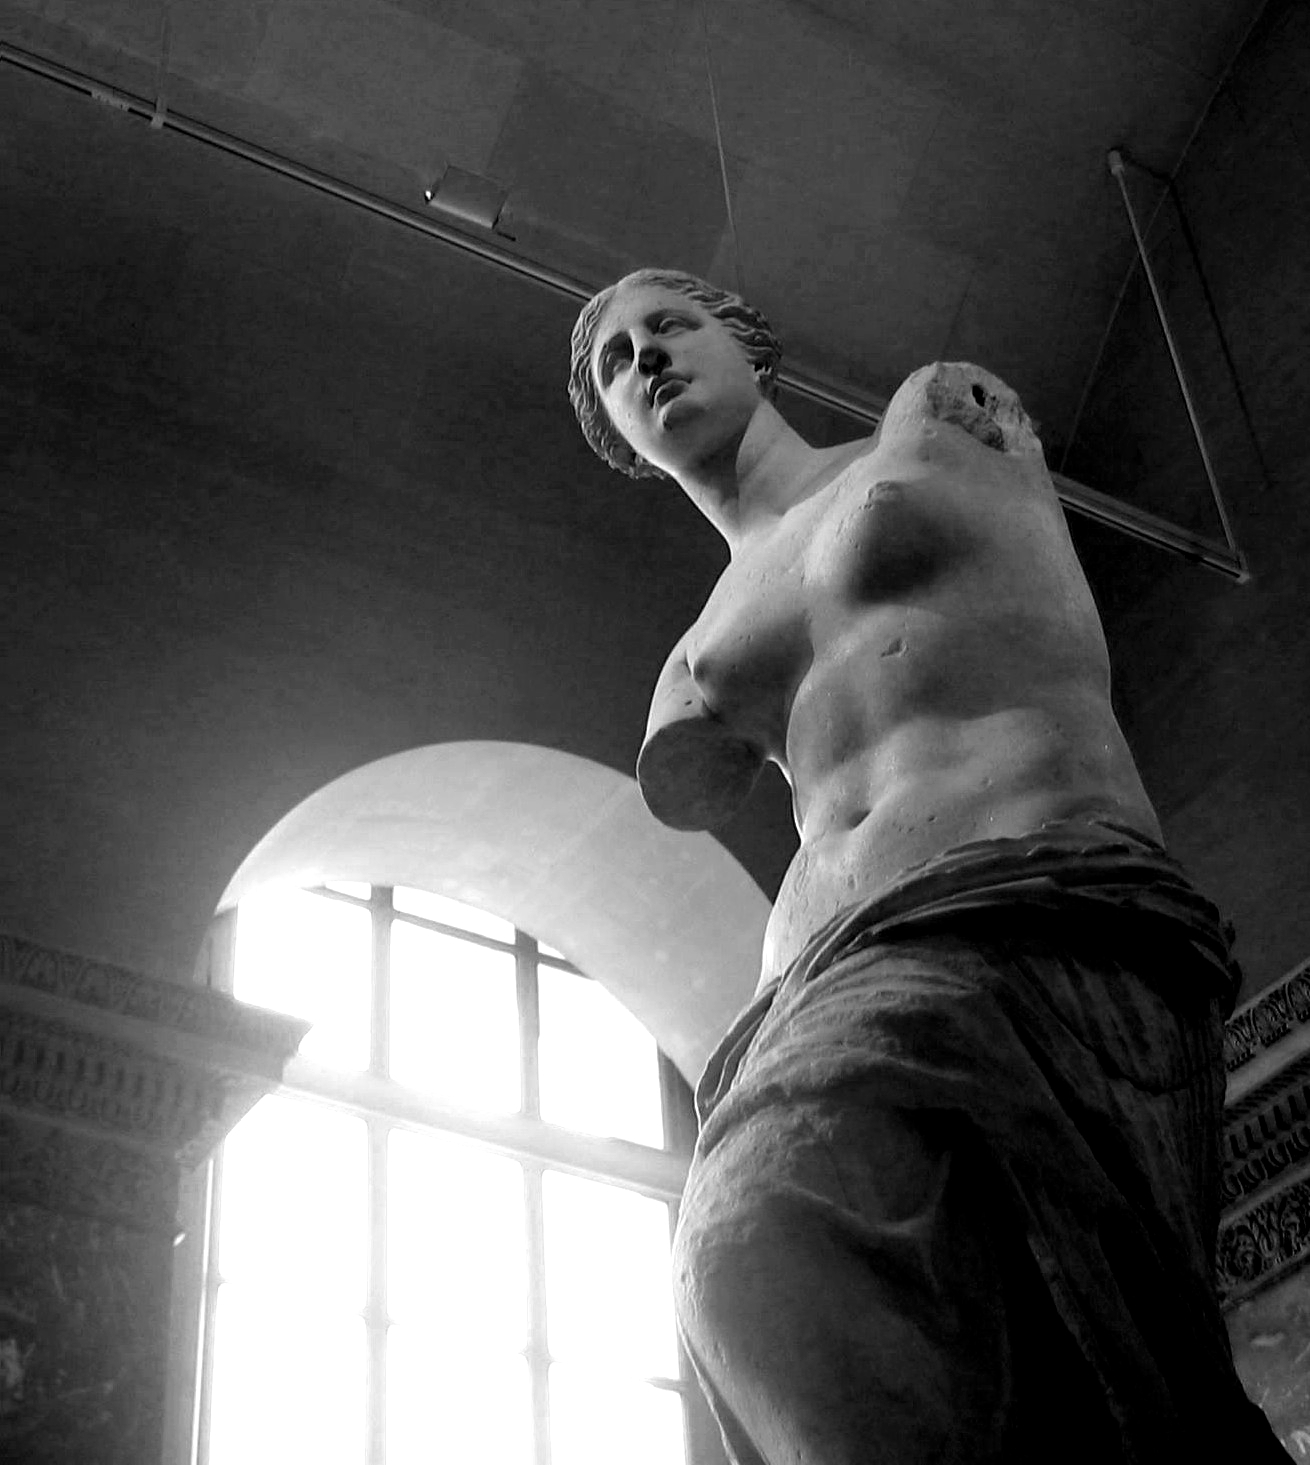 Venus de Milo (sculpture in the Louvre)